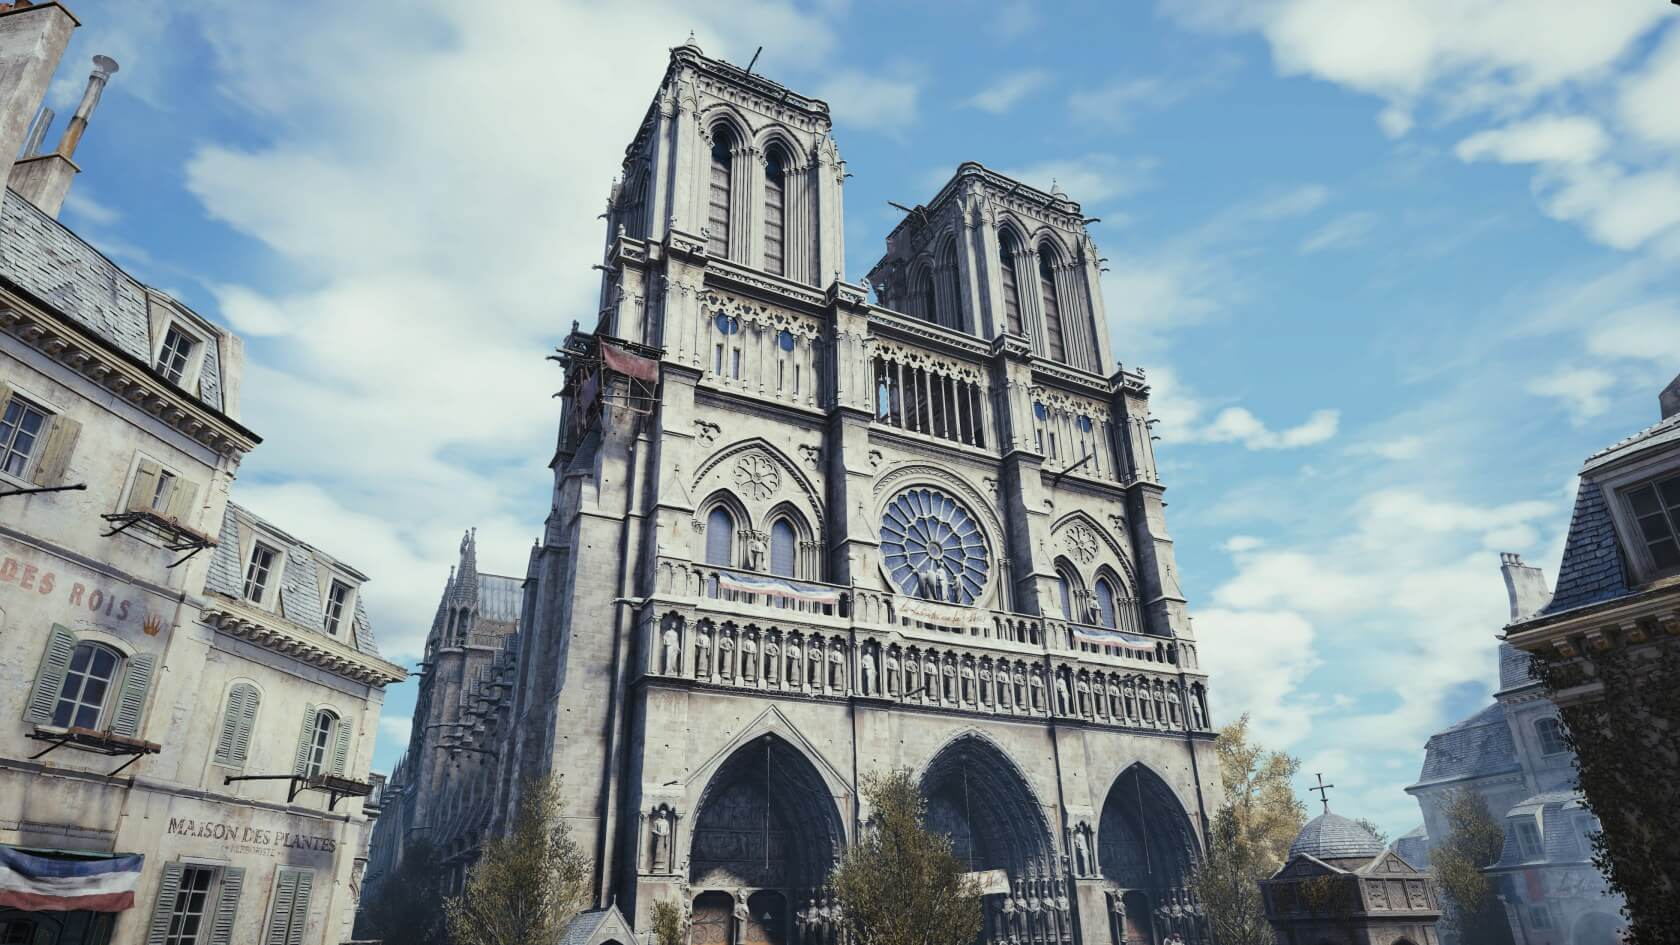 Ubisoft launches Assassin's Creed Unity giveaway and donates €500,000 to aid in Notre Dame's restoration